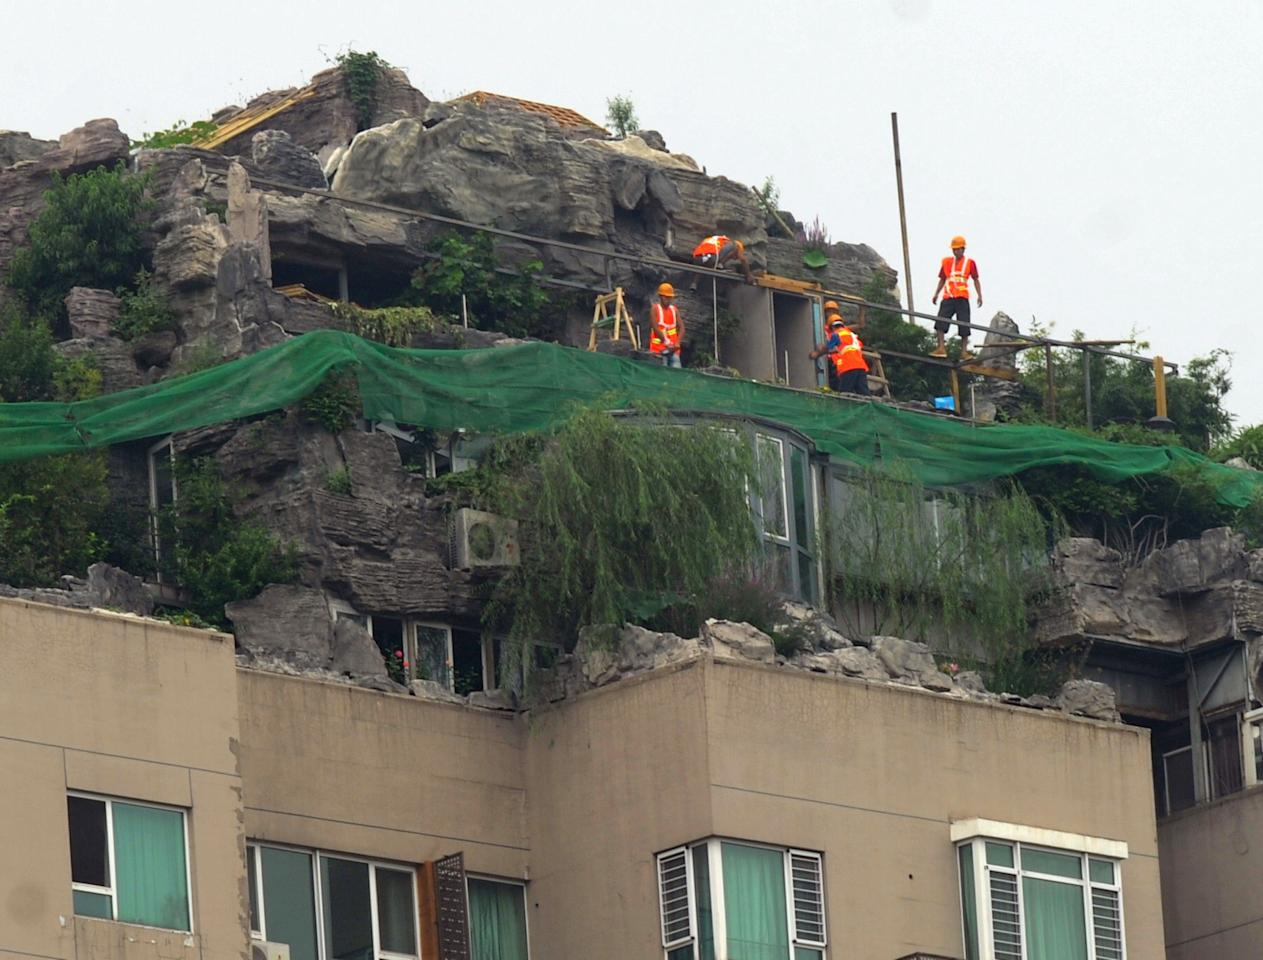 BEIJING, CHINA - AUGUST 16: (CHINA OUT) Workers begin to demolish a villa built privately on the rooftop of a 26-storey residential block on August 16, 2013 in Beijing, China. The owner Zhang Biqing said Wednesday that he will demolish the illegal building in 15 days following local bureau of city administration's decree. (Photo by ChinaFotoPress/ChinaFotoPress via Getty Images)